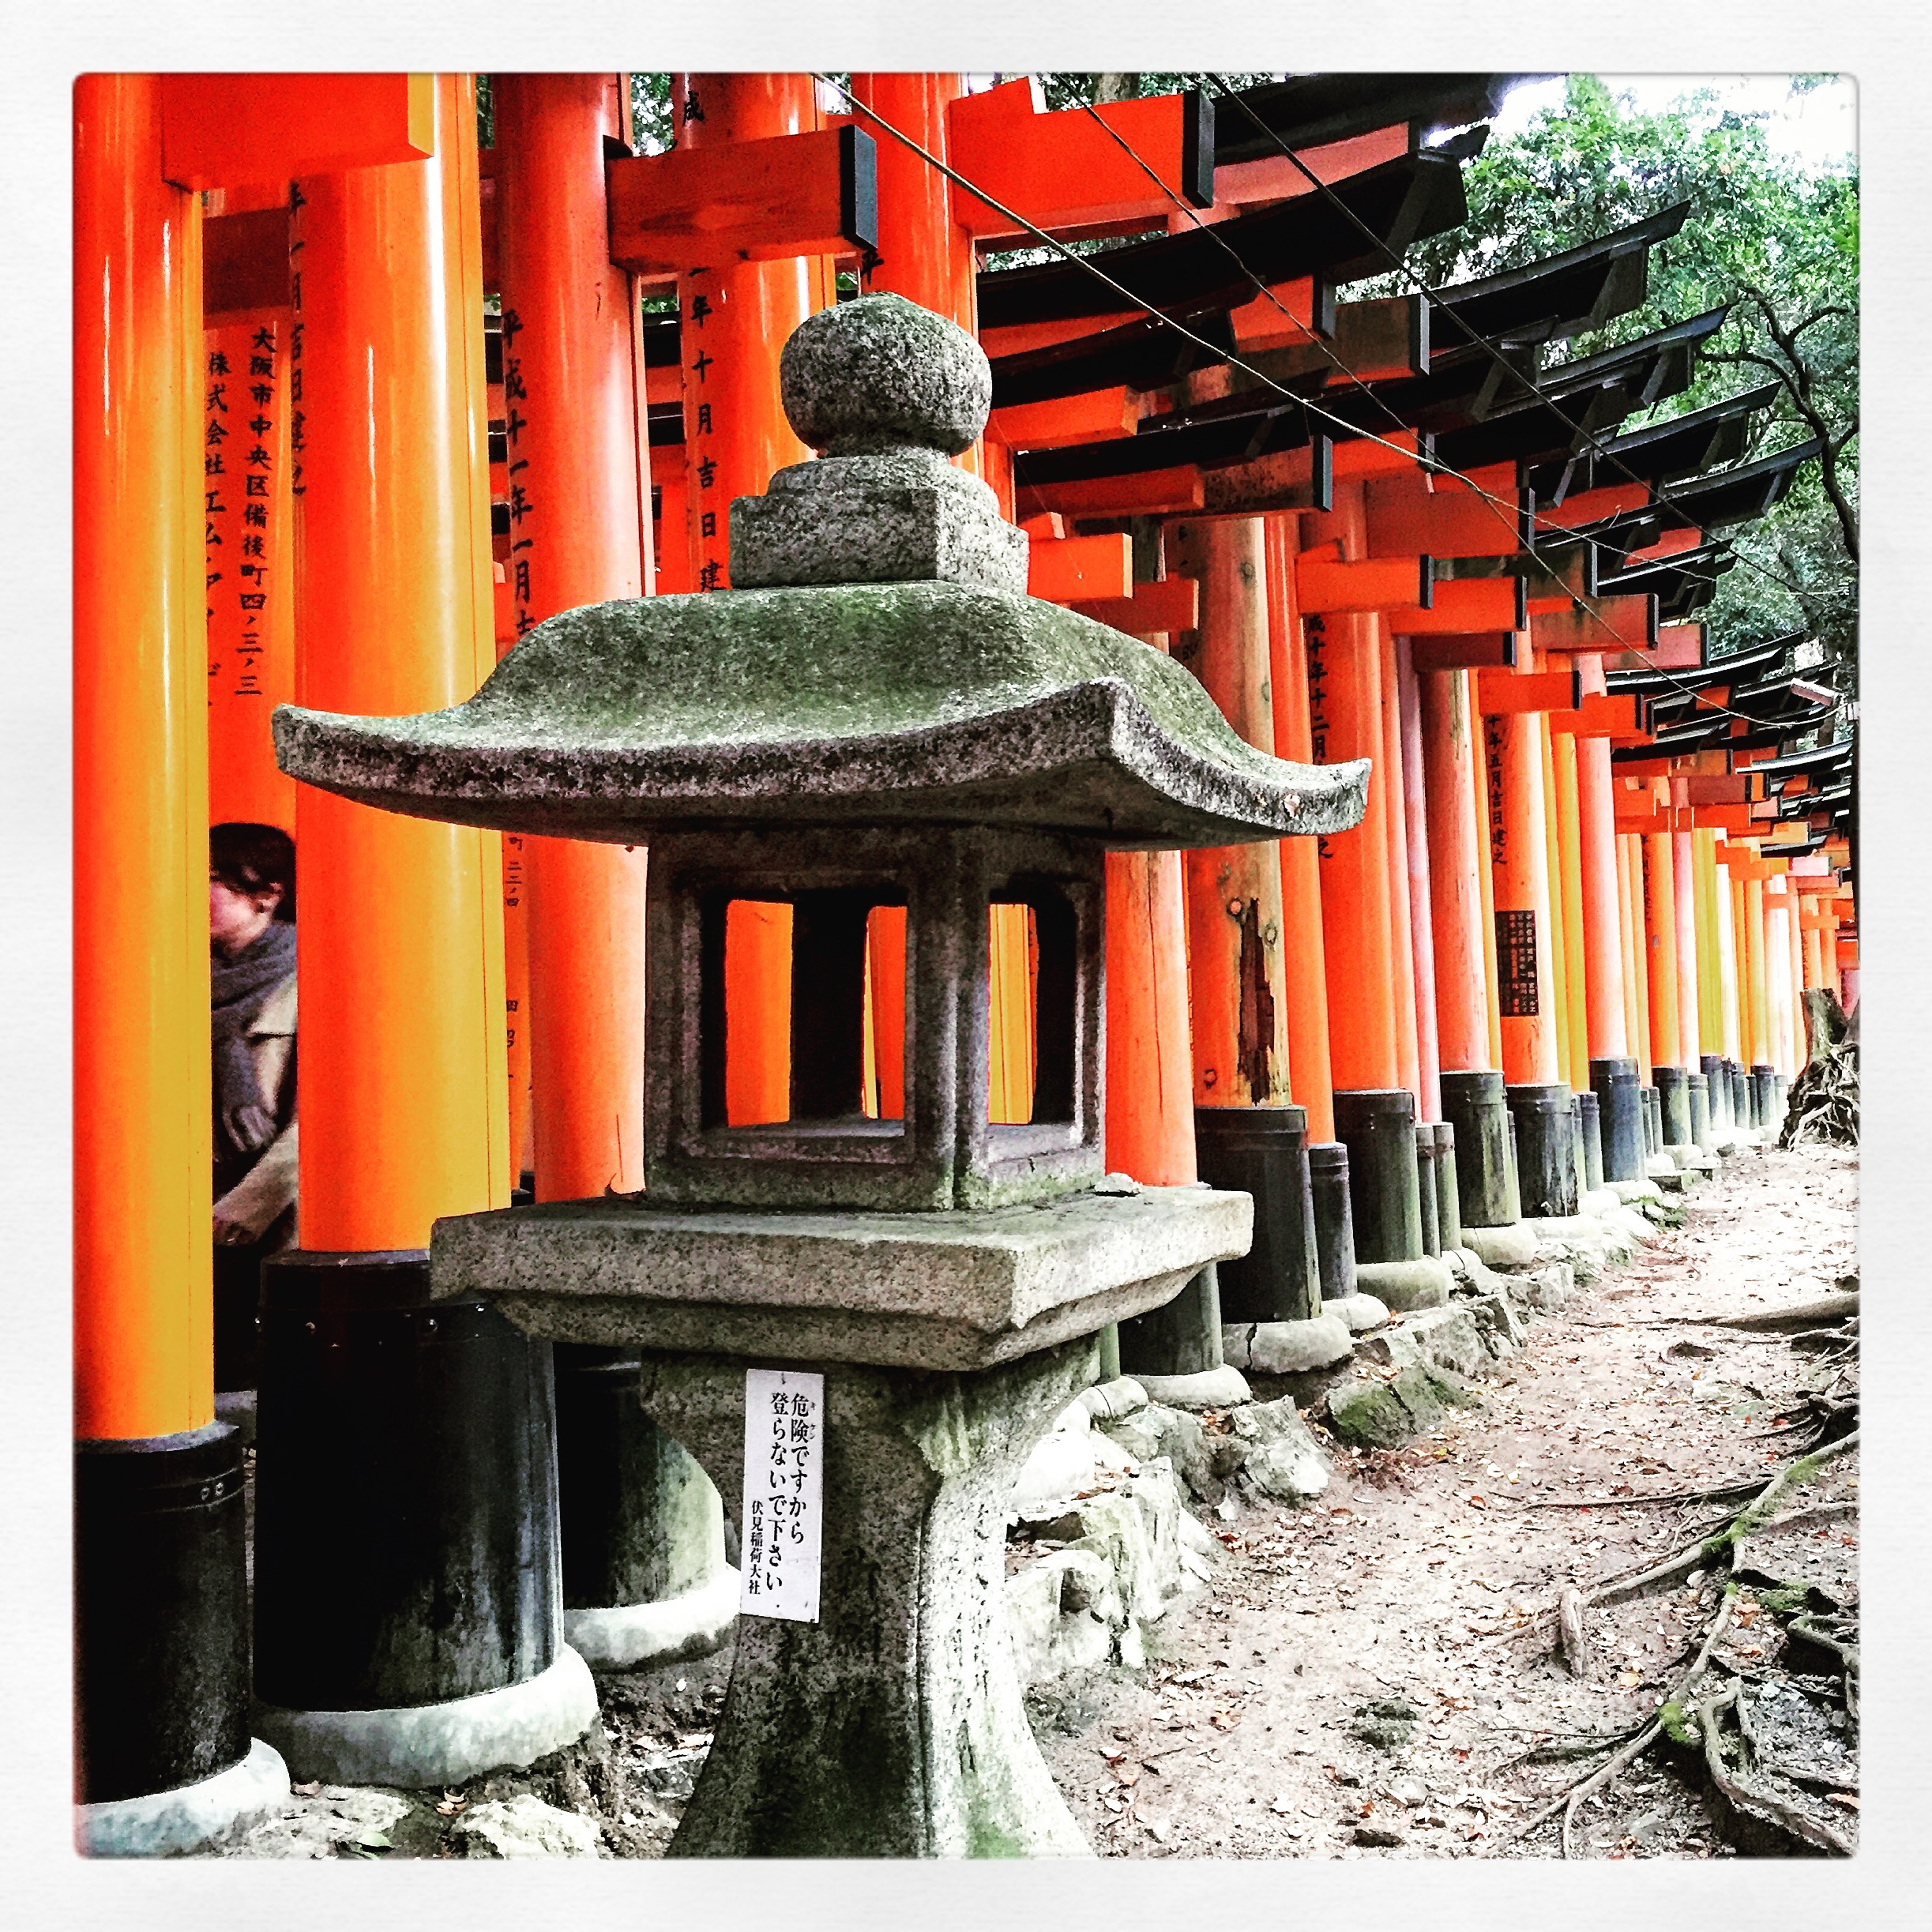 One of my favorite pictures from my day in Kyoto, Japan: The Torii, or gates, of Fushimi Inari-Taisha.